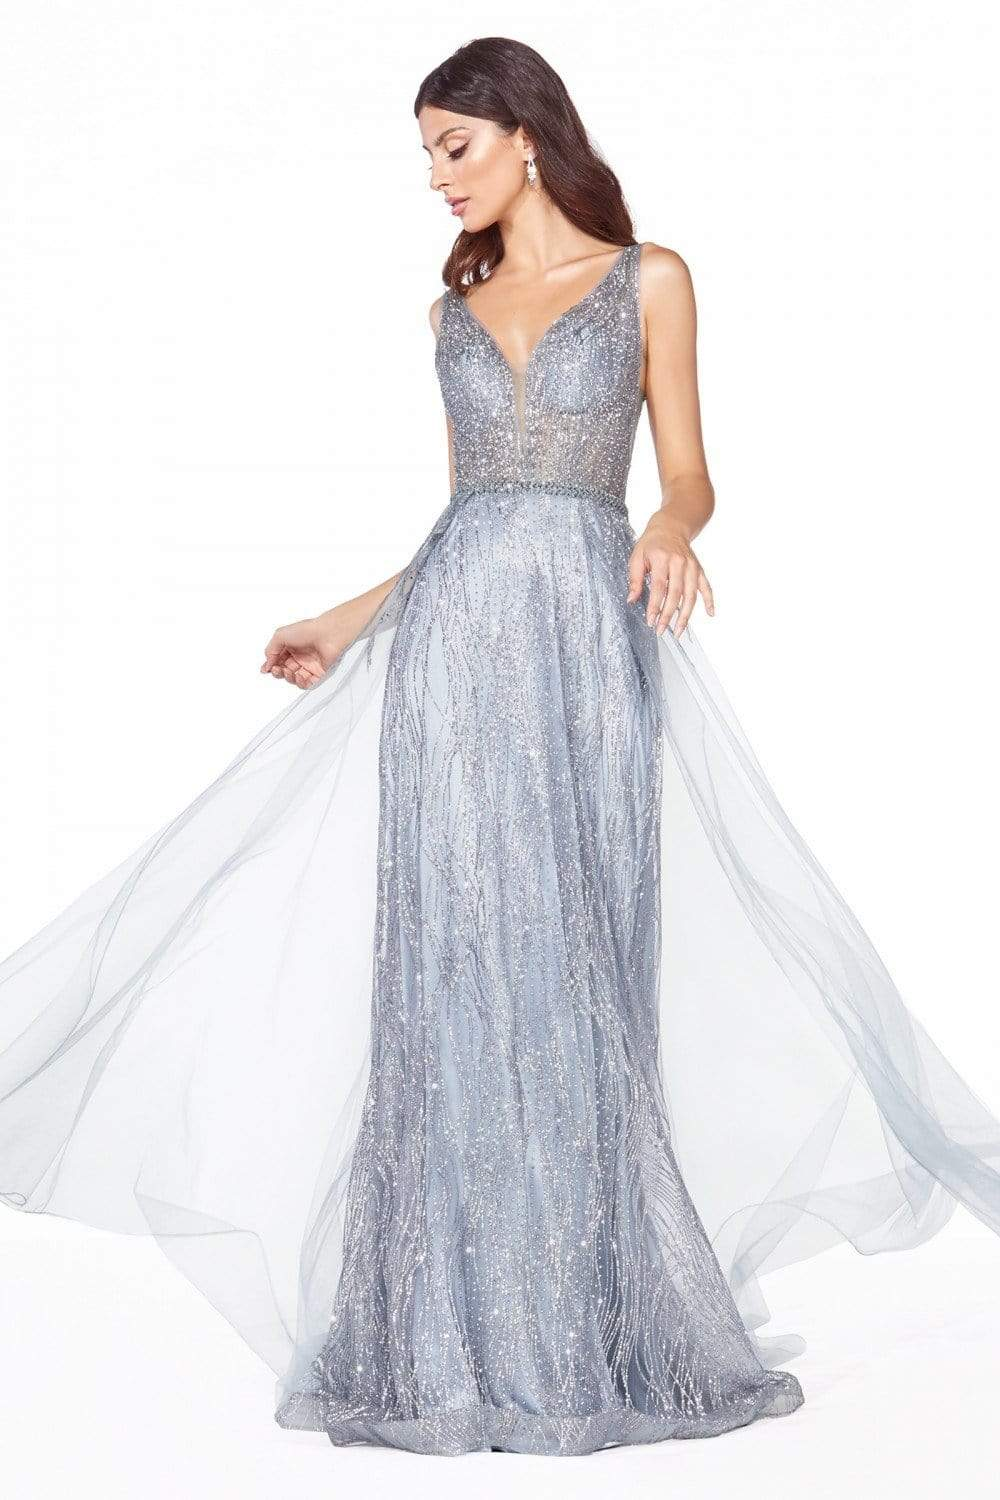 Cinderella Divine - CD0152 Deep V-neck Glitter Tulle A-line Dress Evening Dresses